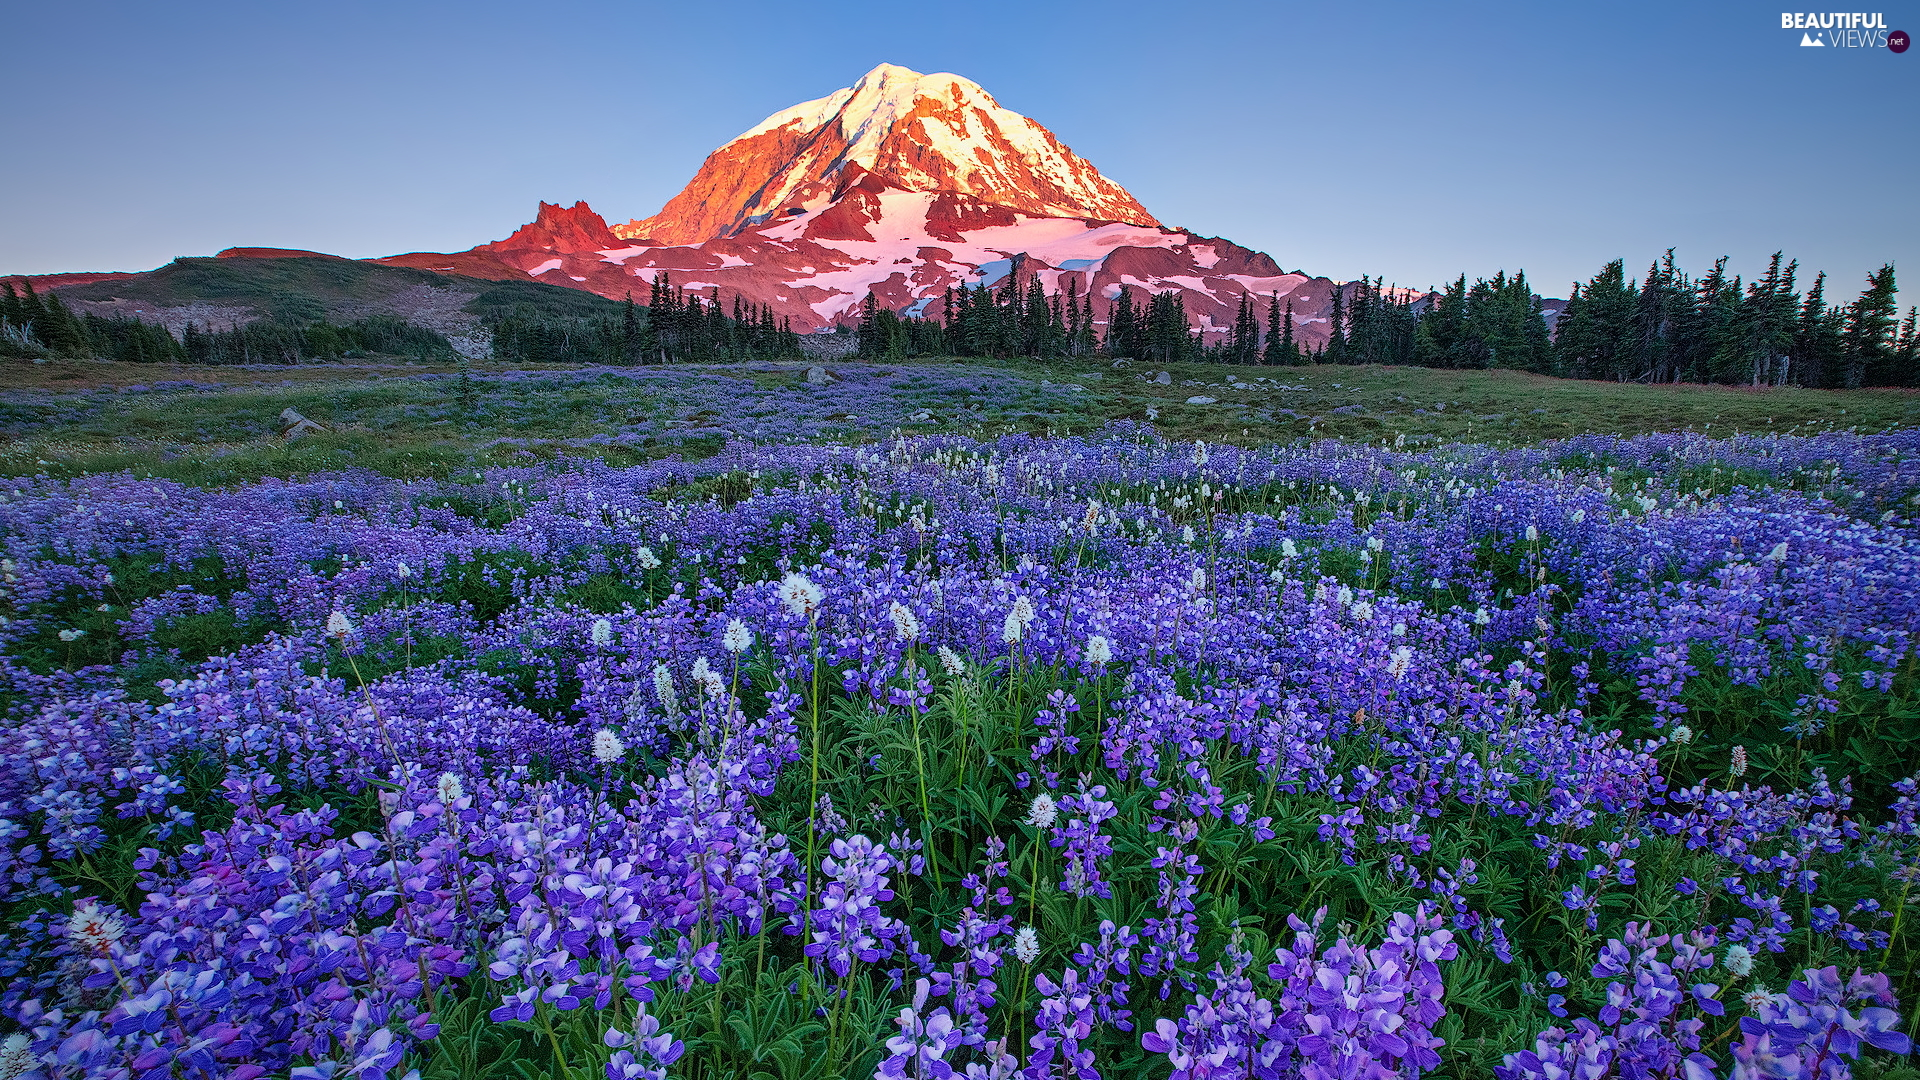 trees, Mountains, viewes, Meadow, Washington State, The United States, lupine, Mount Rainier National Park, Flowers